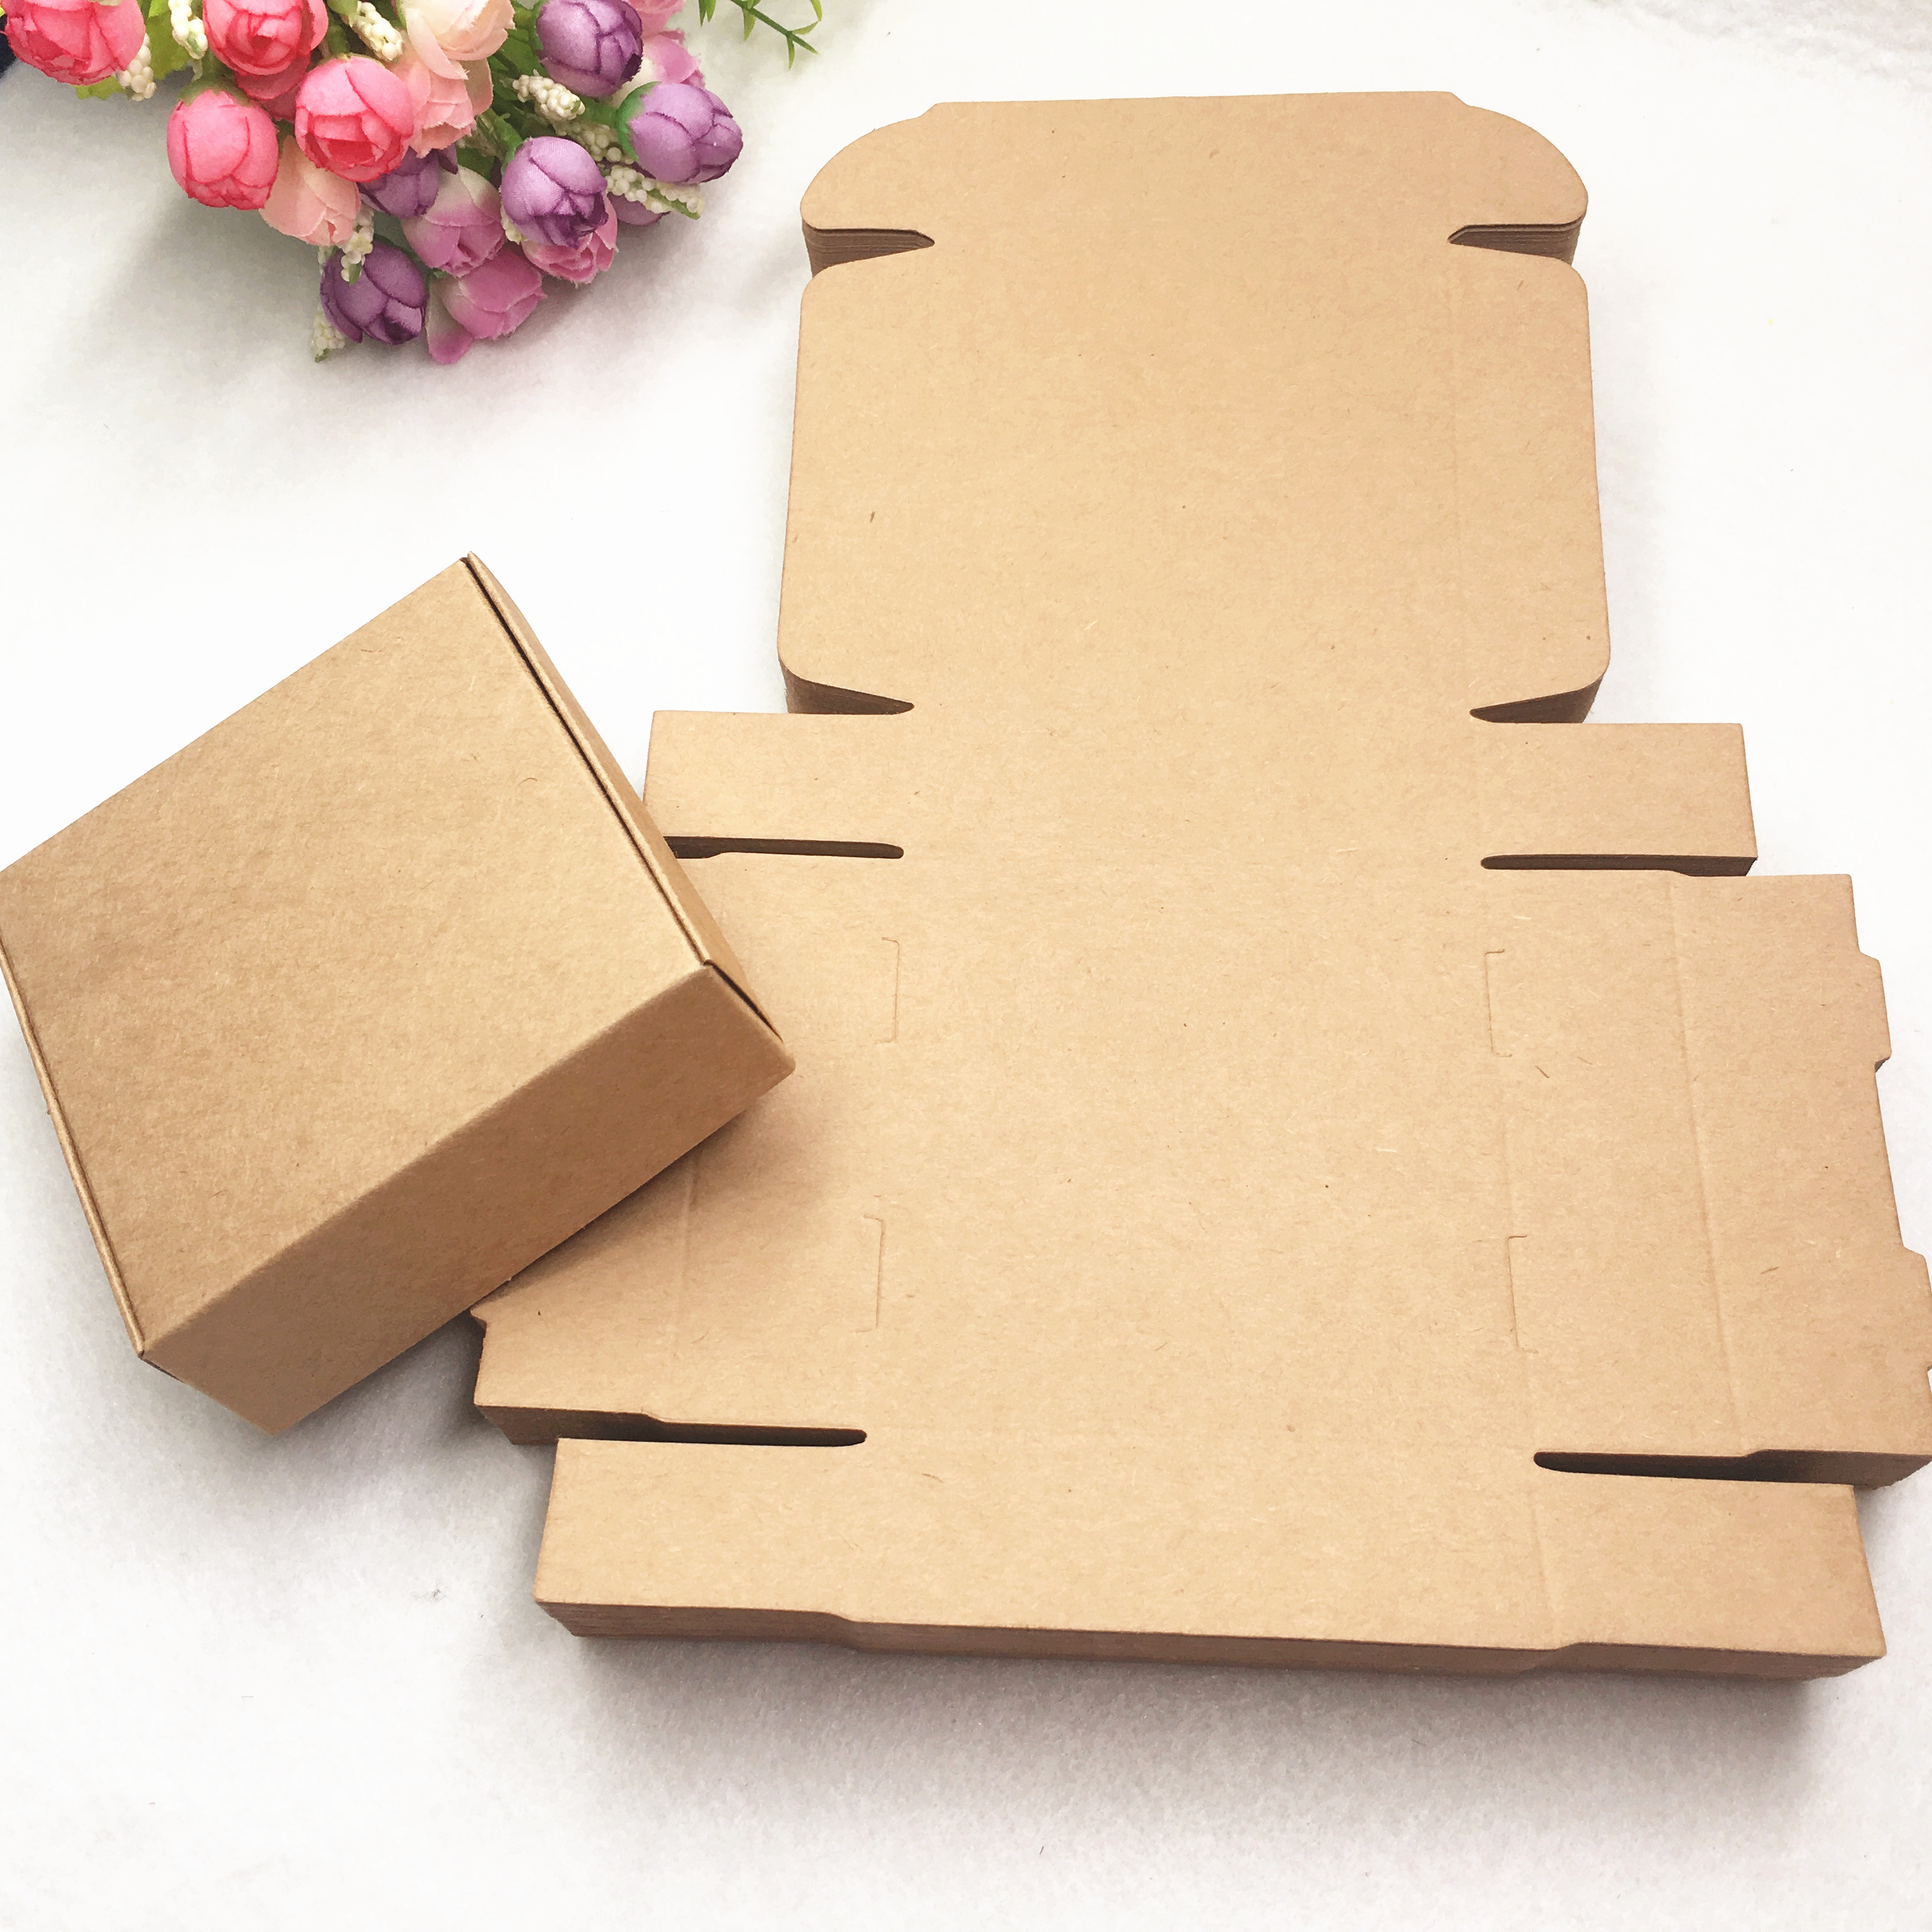 20pcs/lot 9 Size Kraft Aircraft Gift Packaging Box 3 Color Choose Jewelry Accessories Storage Box For Handmade Soap Craft